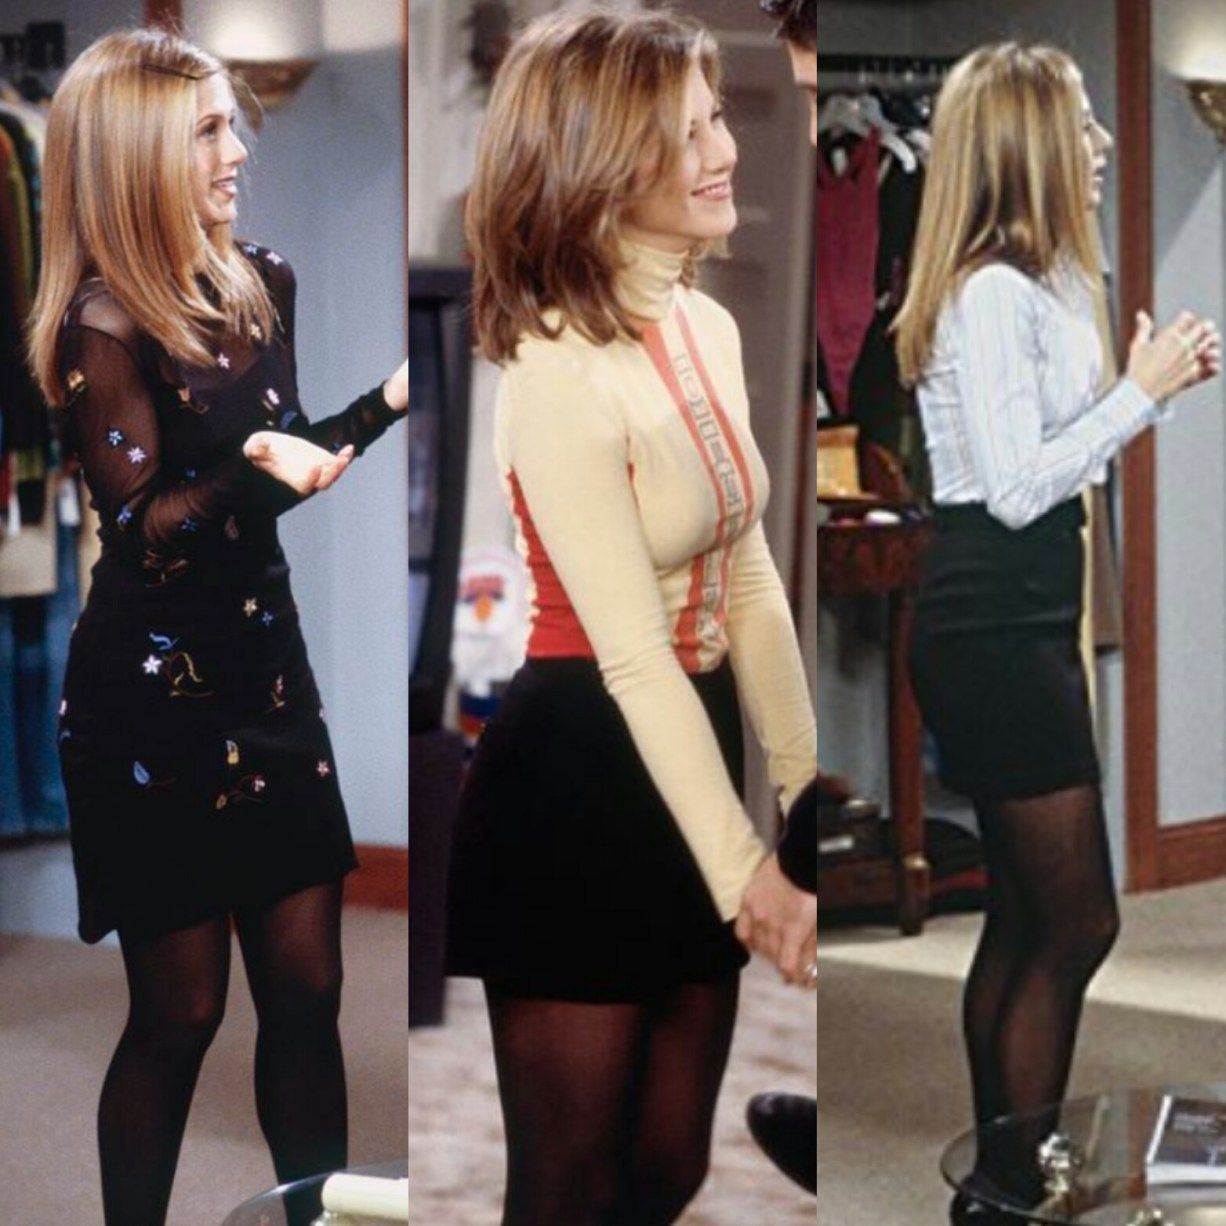 Stockings Rachel Green Outfits Outfit Inspirations Edgy Rachel Green Style [ 1226 x 1226 Pixel ]